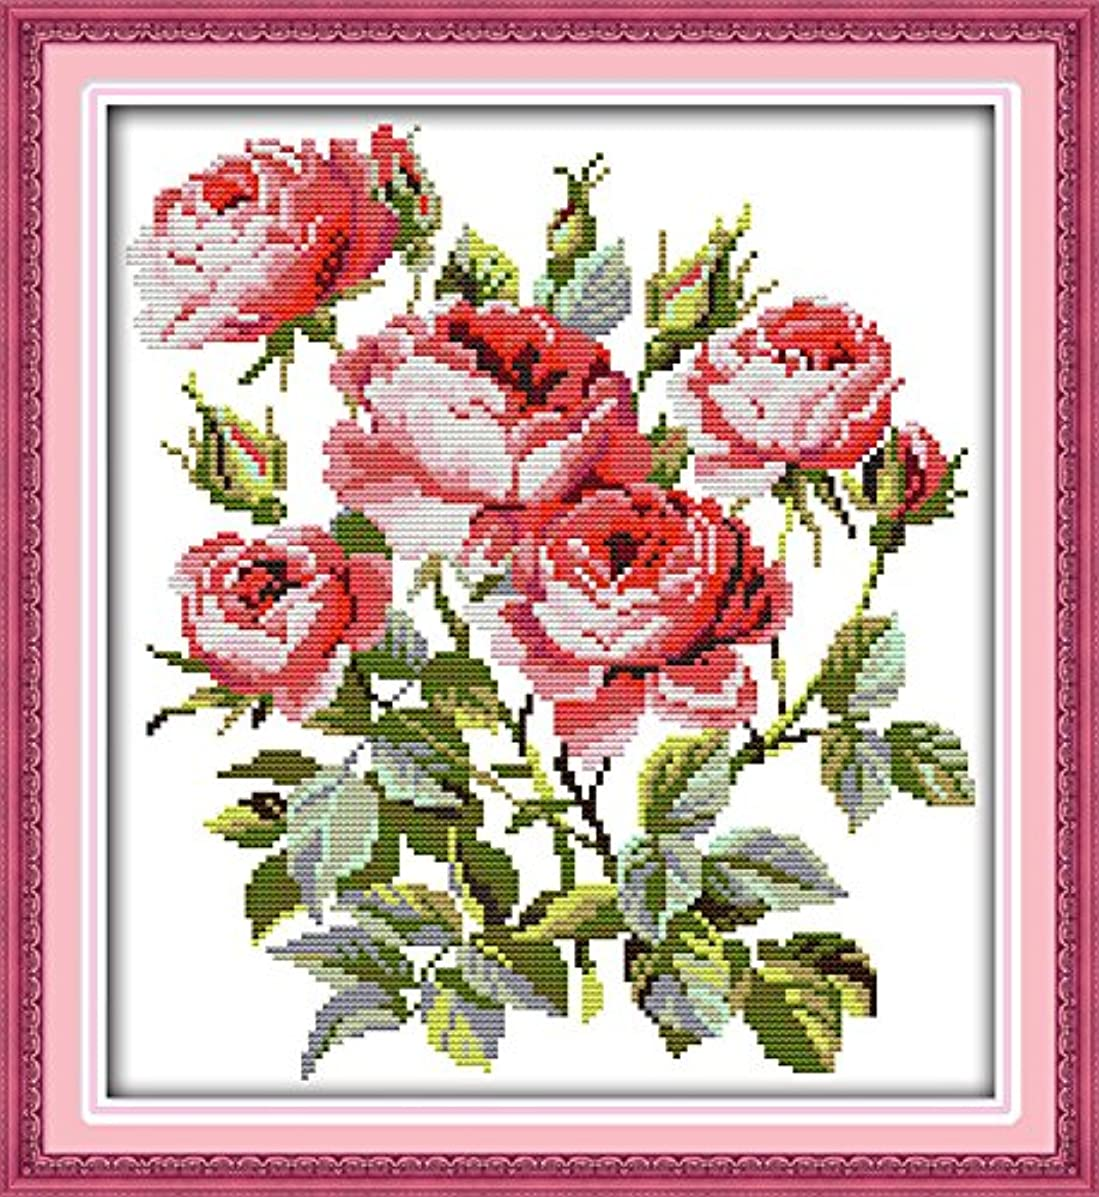 Joy Sunday? Cross Stitch Kit 11CT Stamped Embroidery Kits Precise Printed Needlework- Blooming roses 39×42CM